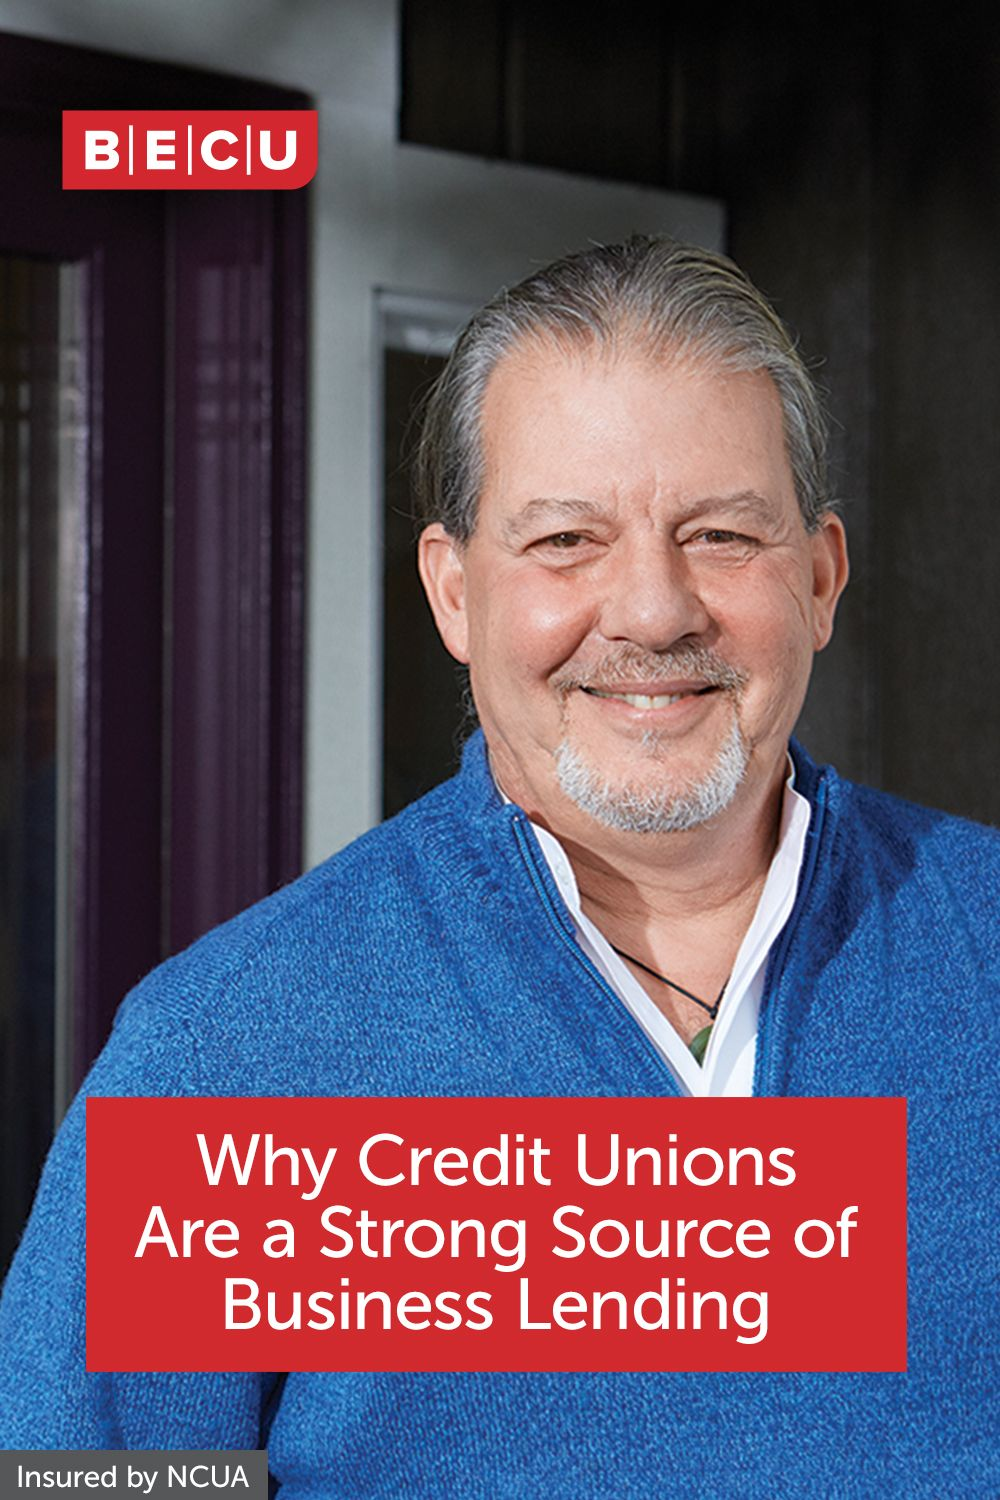 Why credit unions are a strong source of business lending